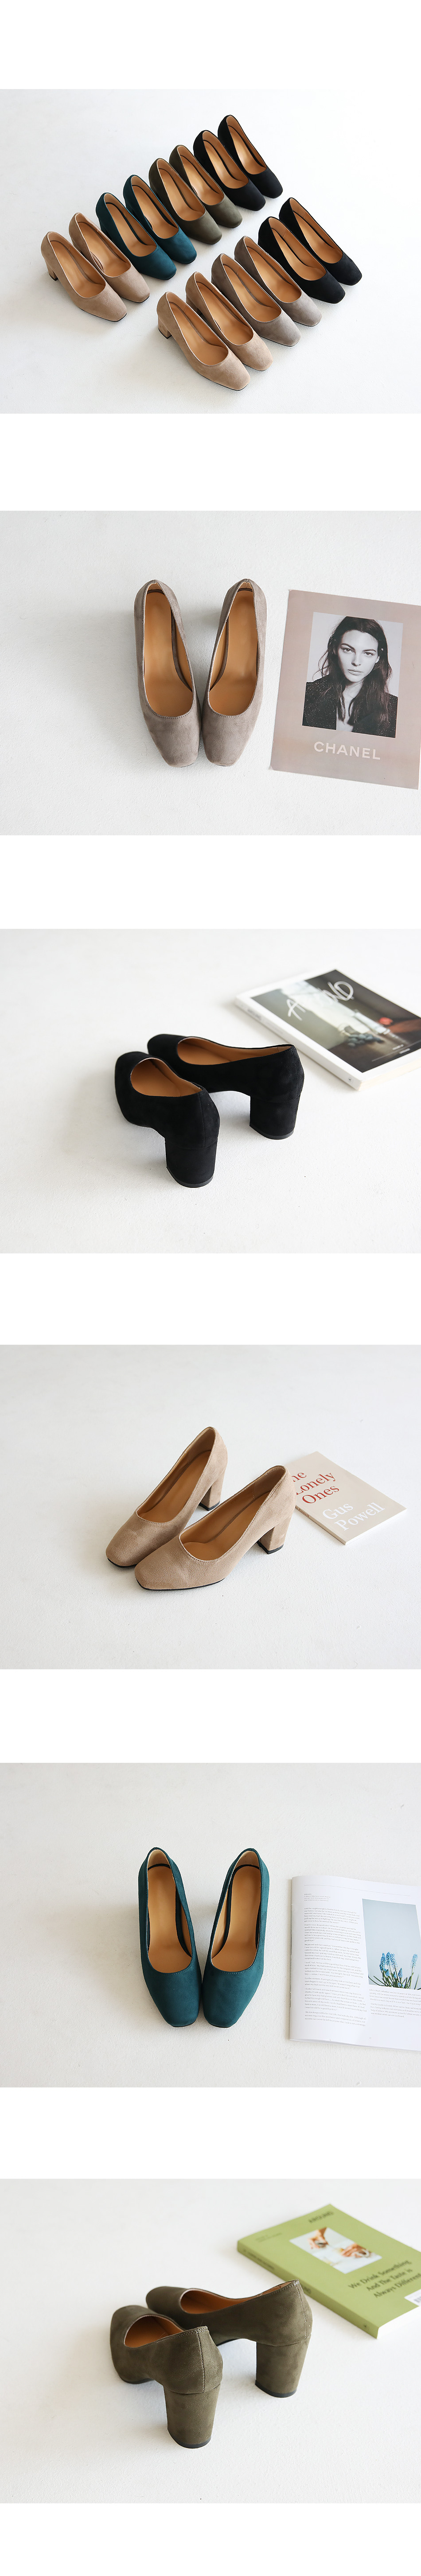 Andy's Middle Hill & High Heels 5,7cm